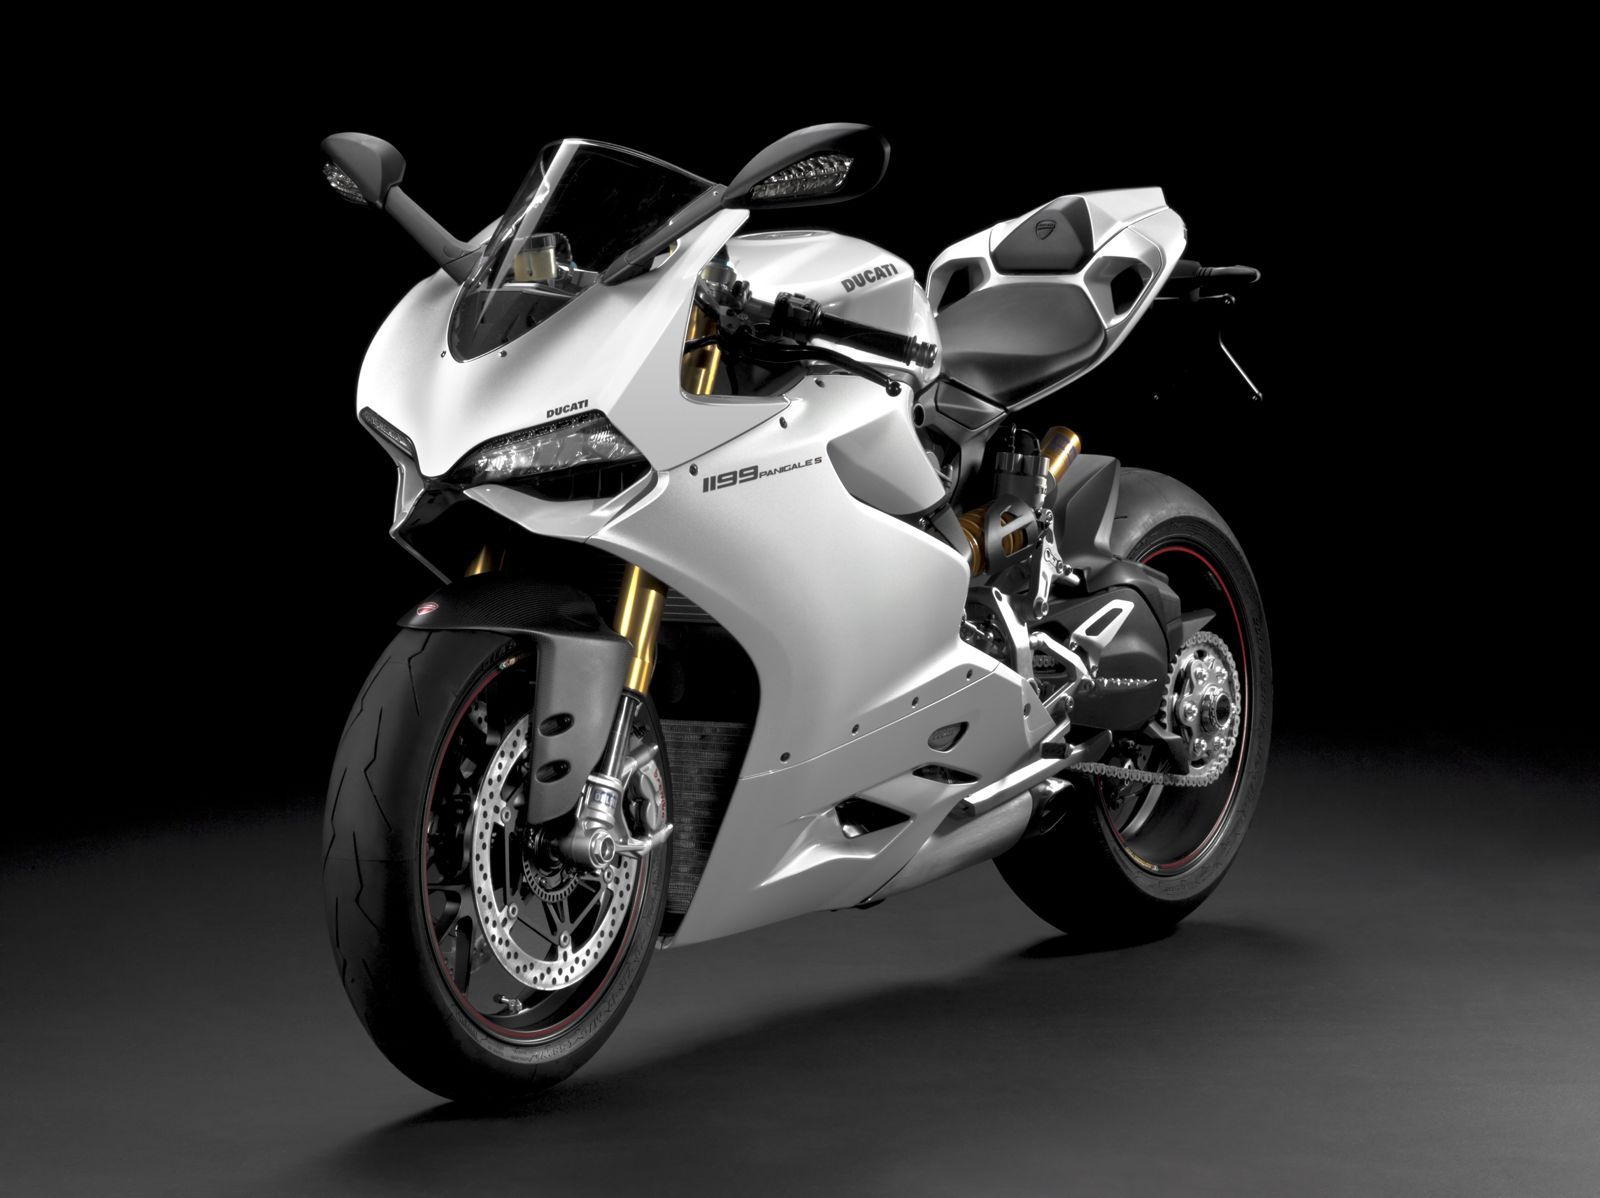 ducati 1199 panigale cars motorcycles worth a look pinterest. Black Bedroom Furniture Sets. Home Design Ideas